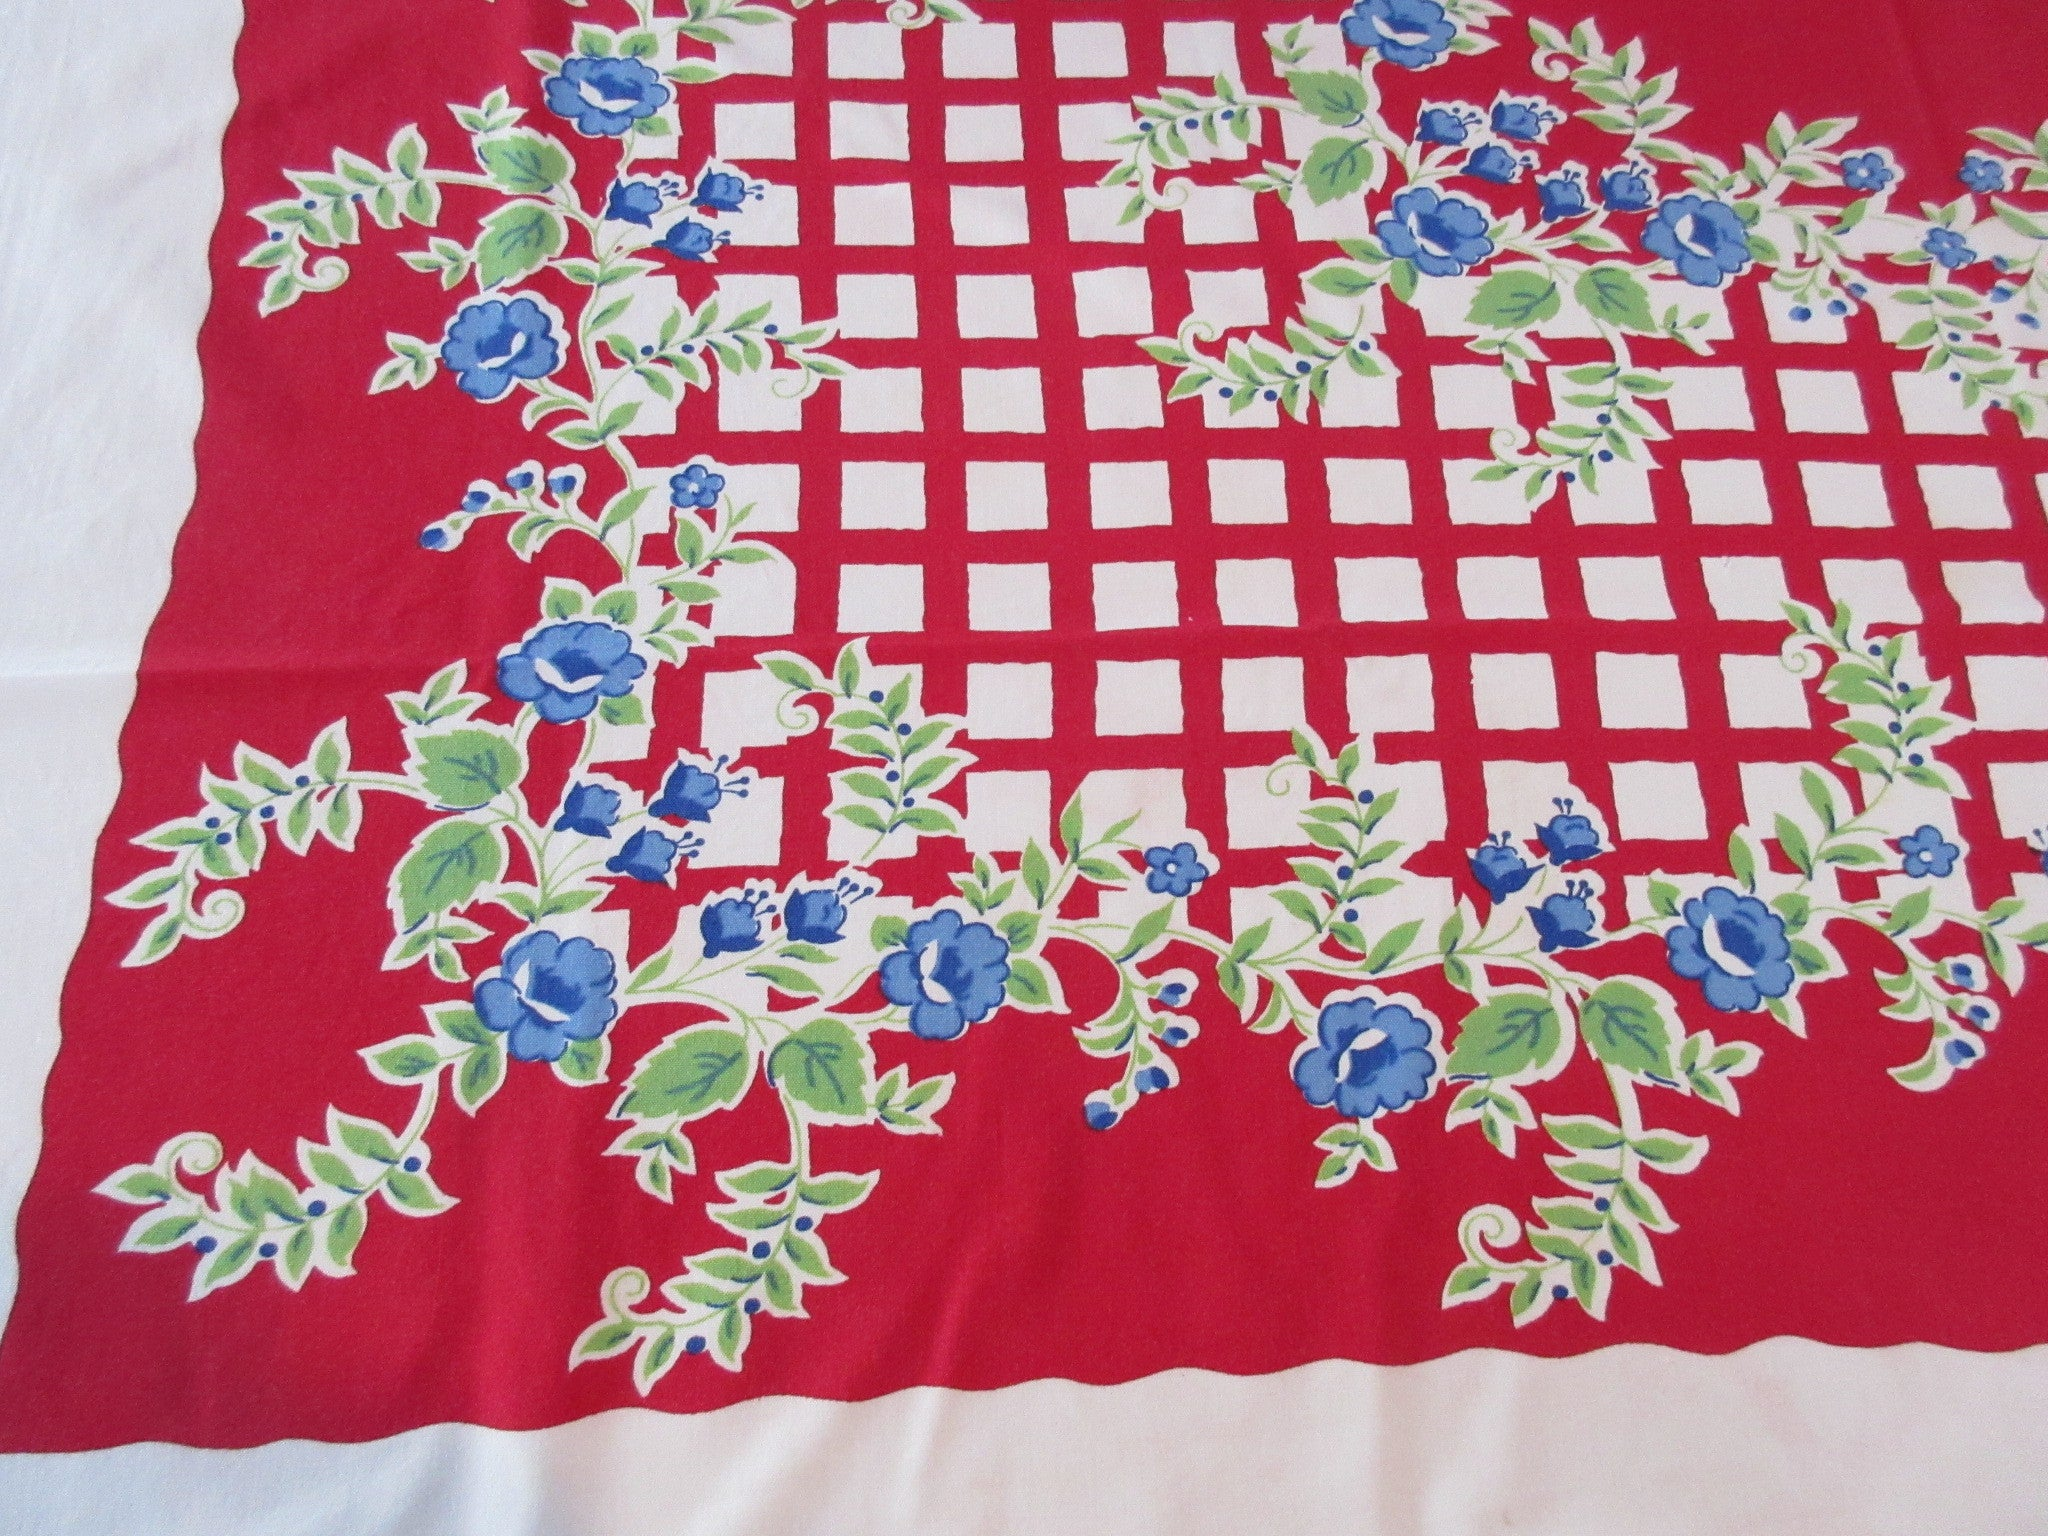 Blue Green Roses on Red Plaid Vintage Printed Tablecloth (50 X 44)